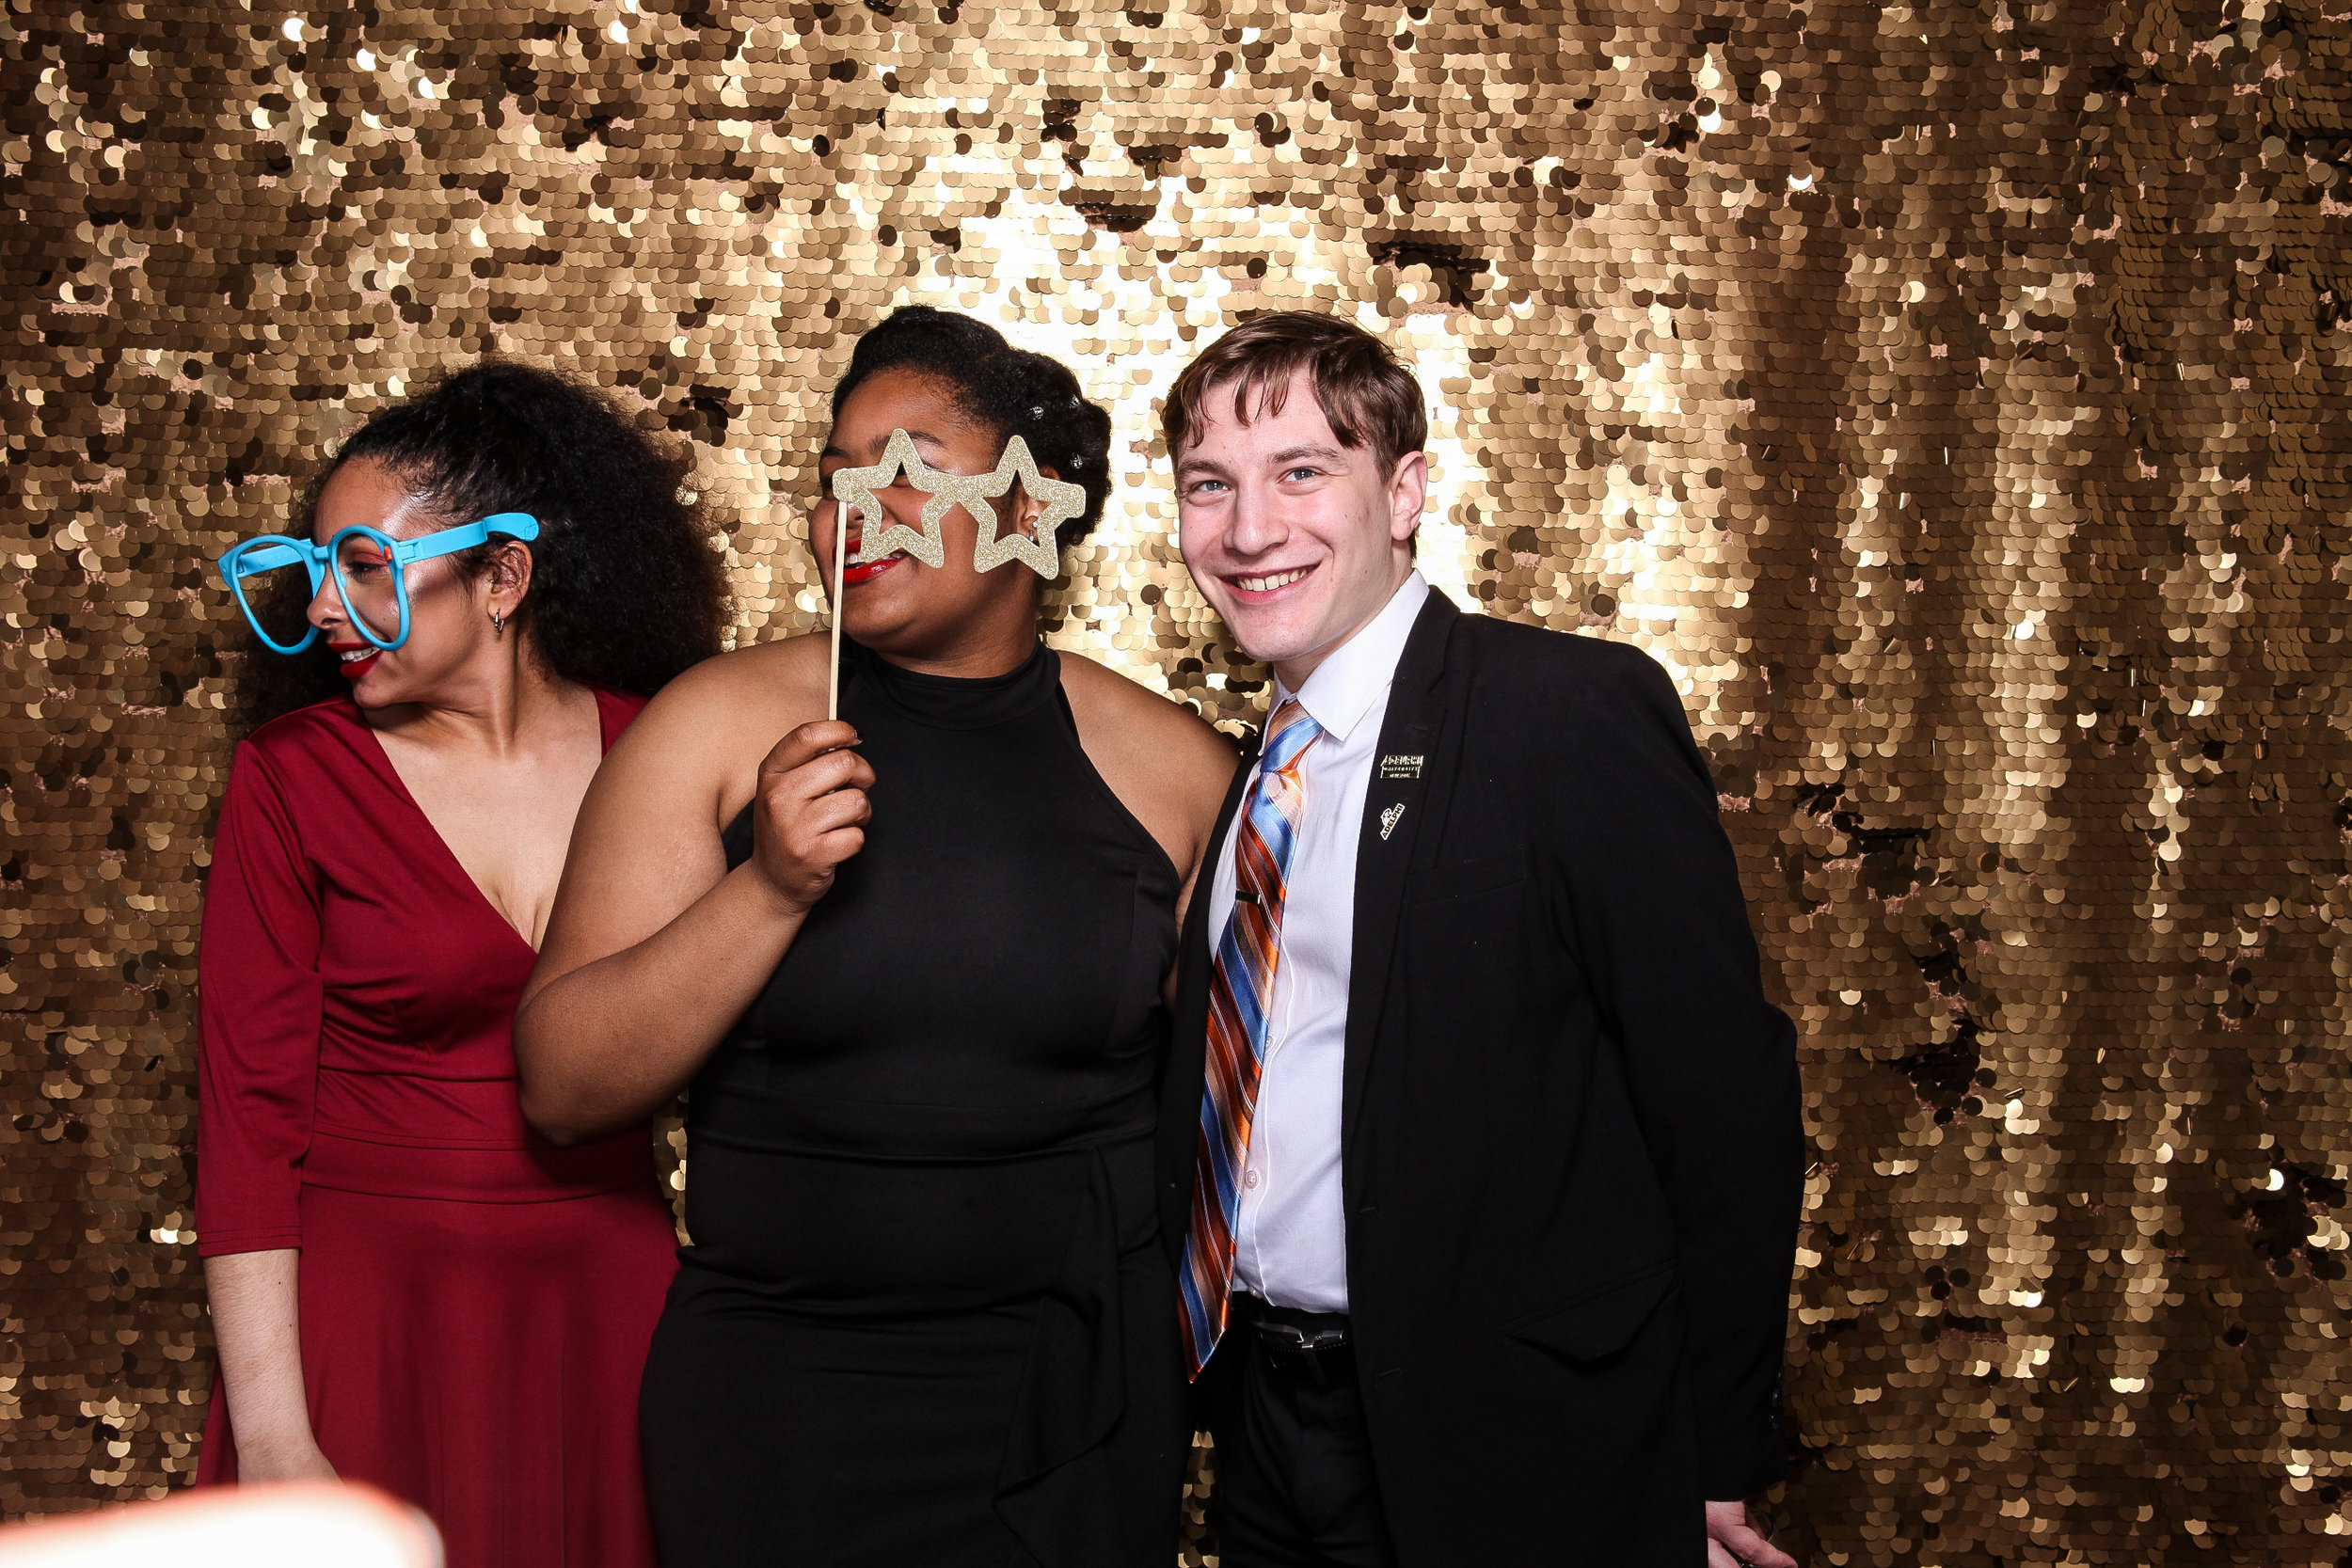 20190503_Adelphi_Senior_Formal-394.jpg